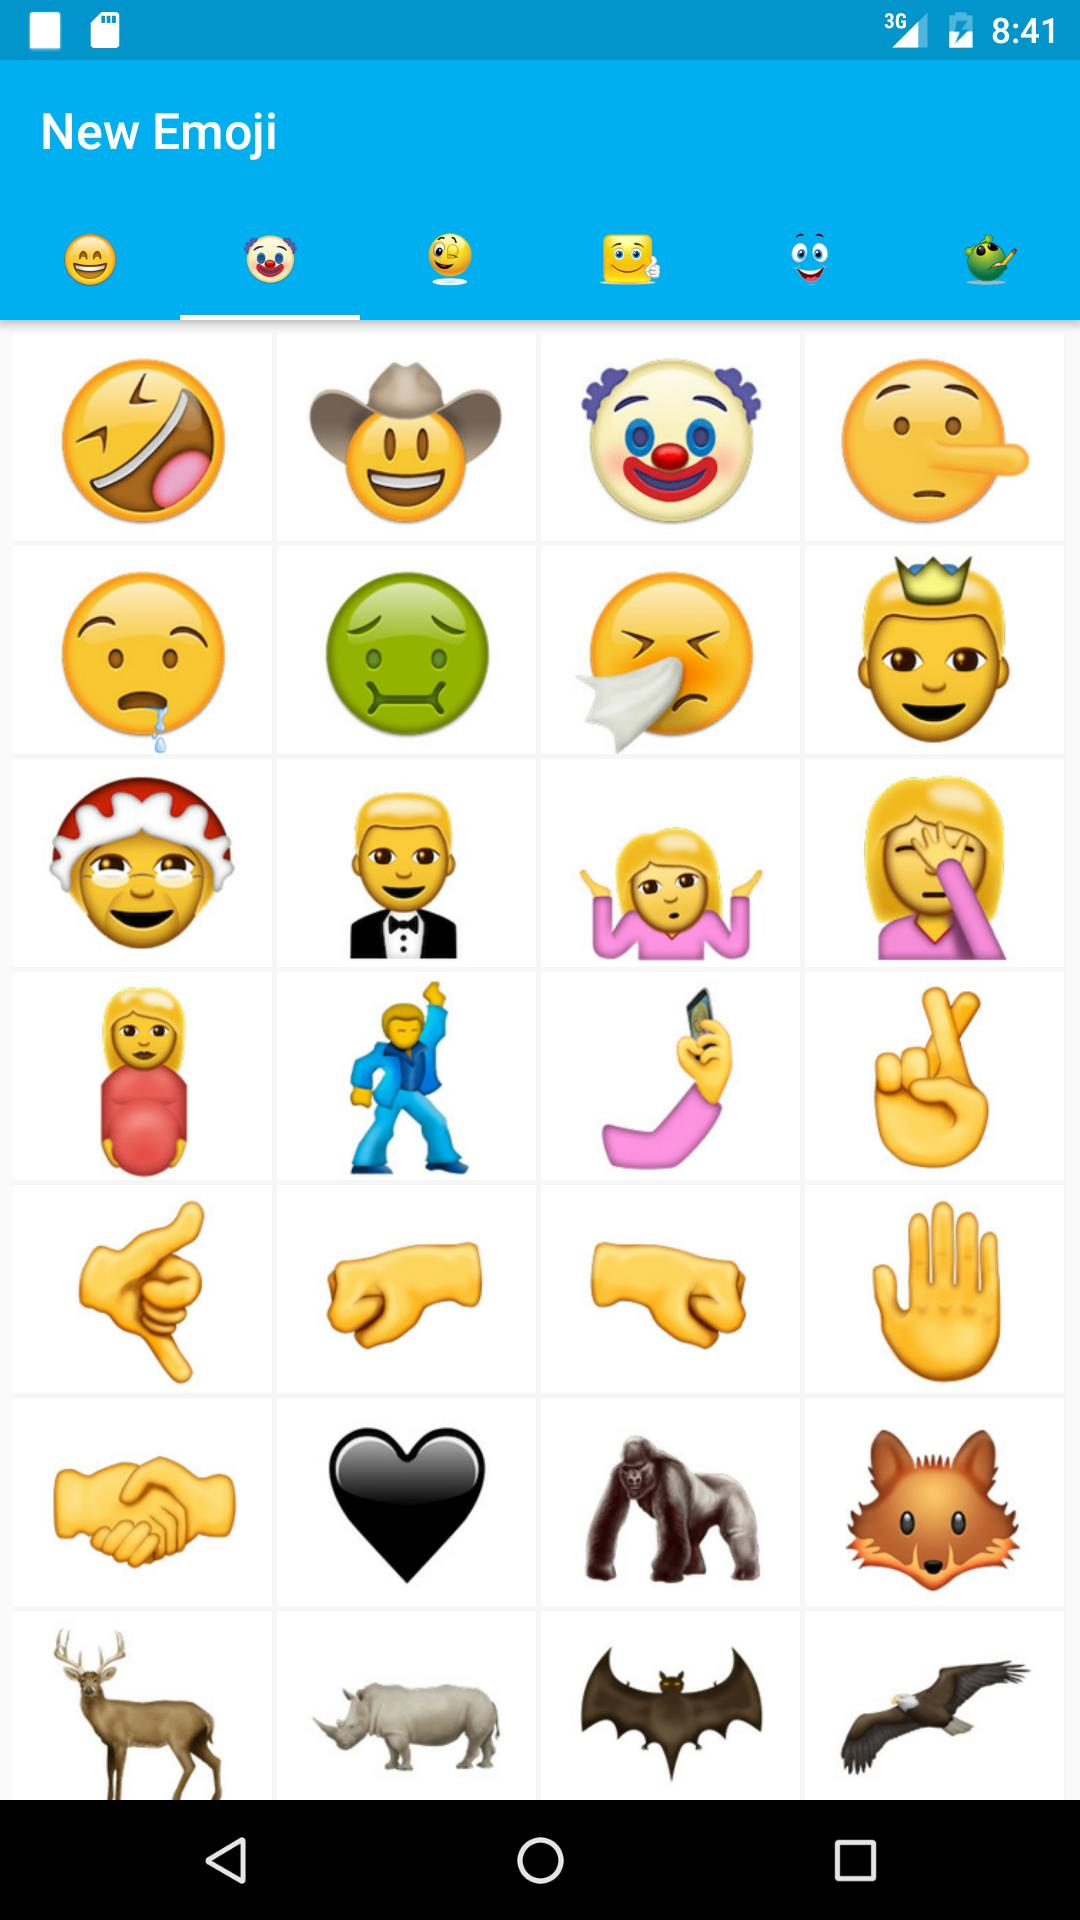 New emoji 2016 free android poster